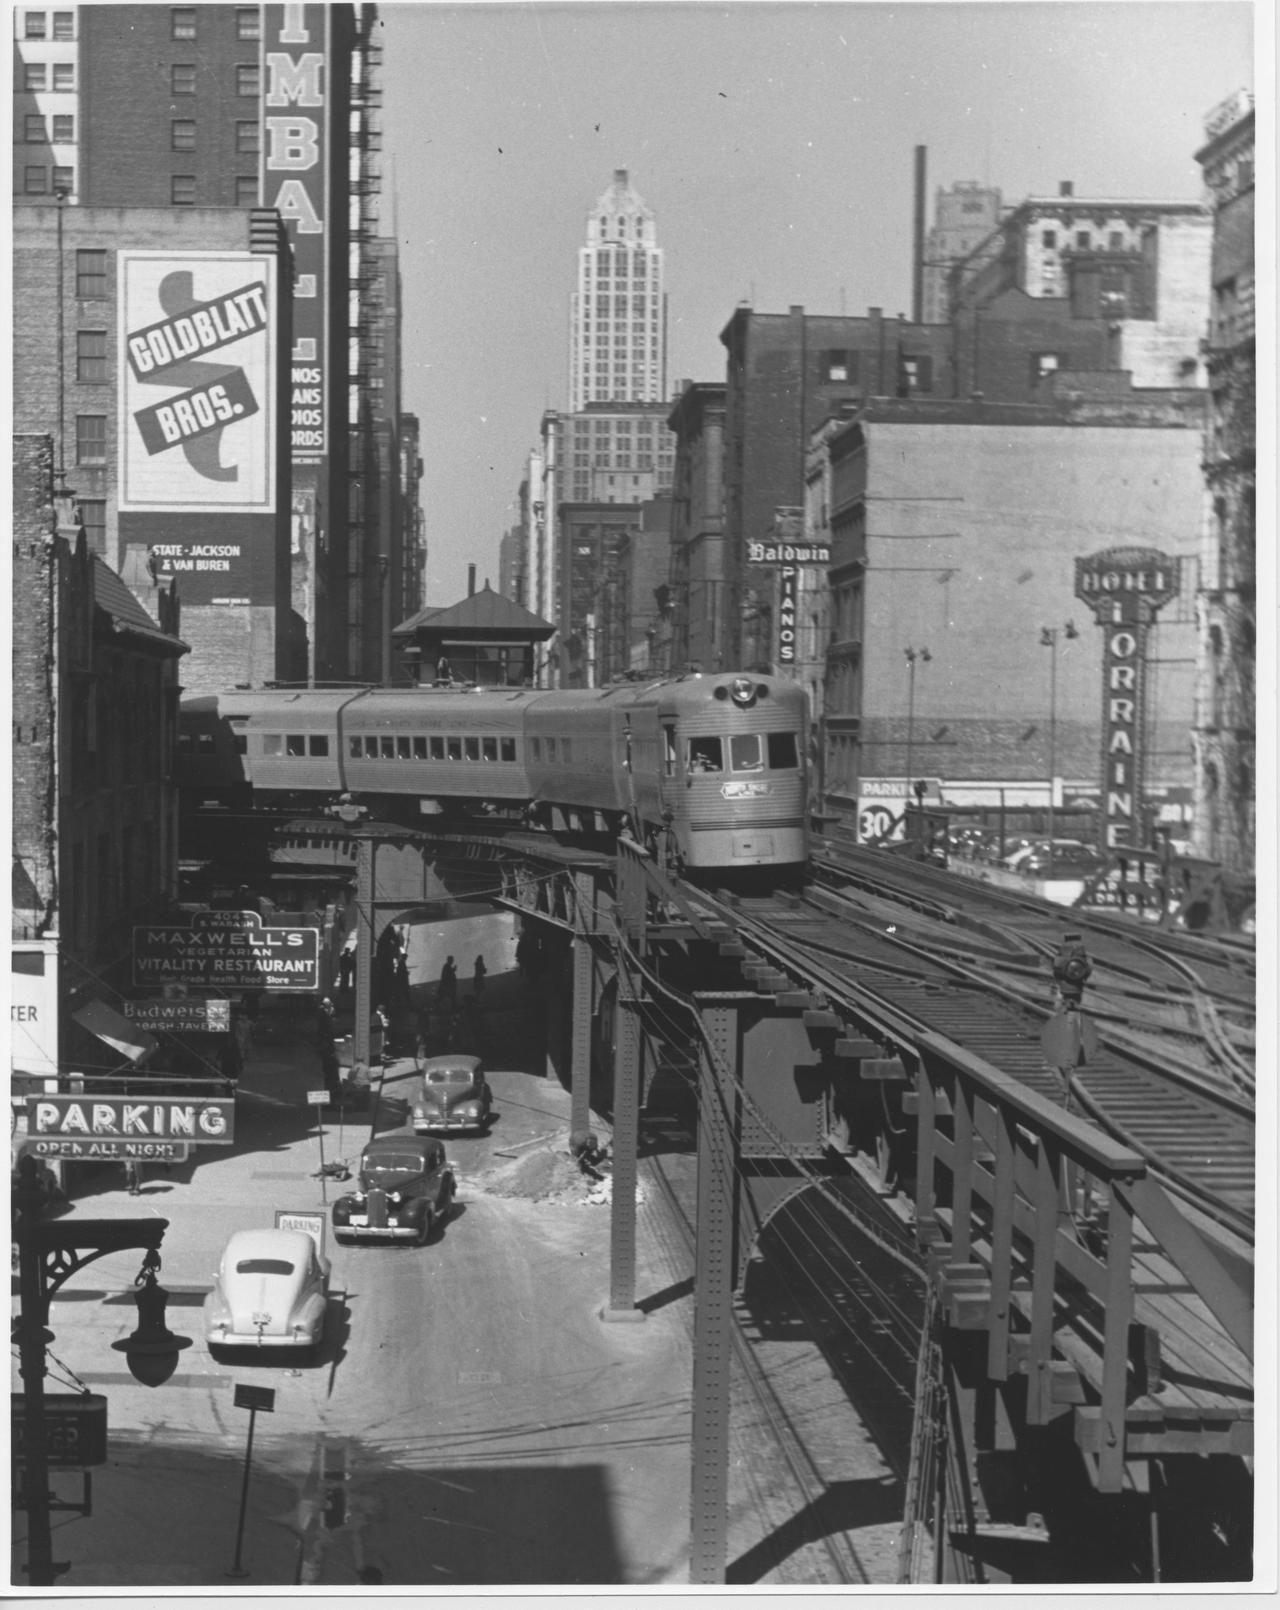 Michigan Avenue 1945 With Images Chicago Photos Chicago Architecture Chicago City